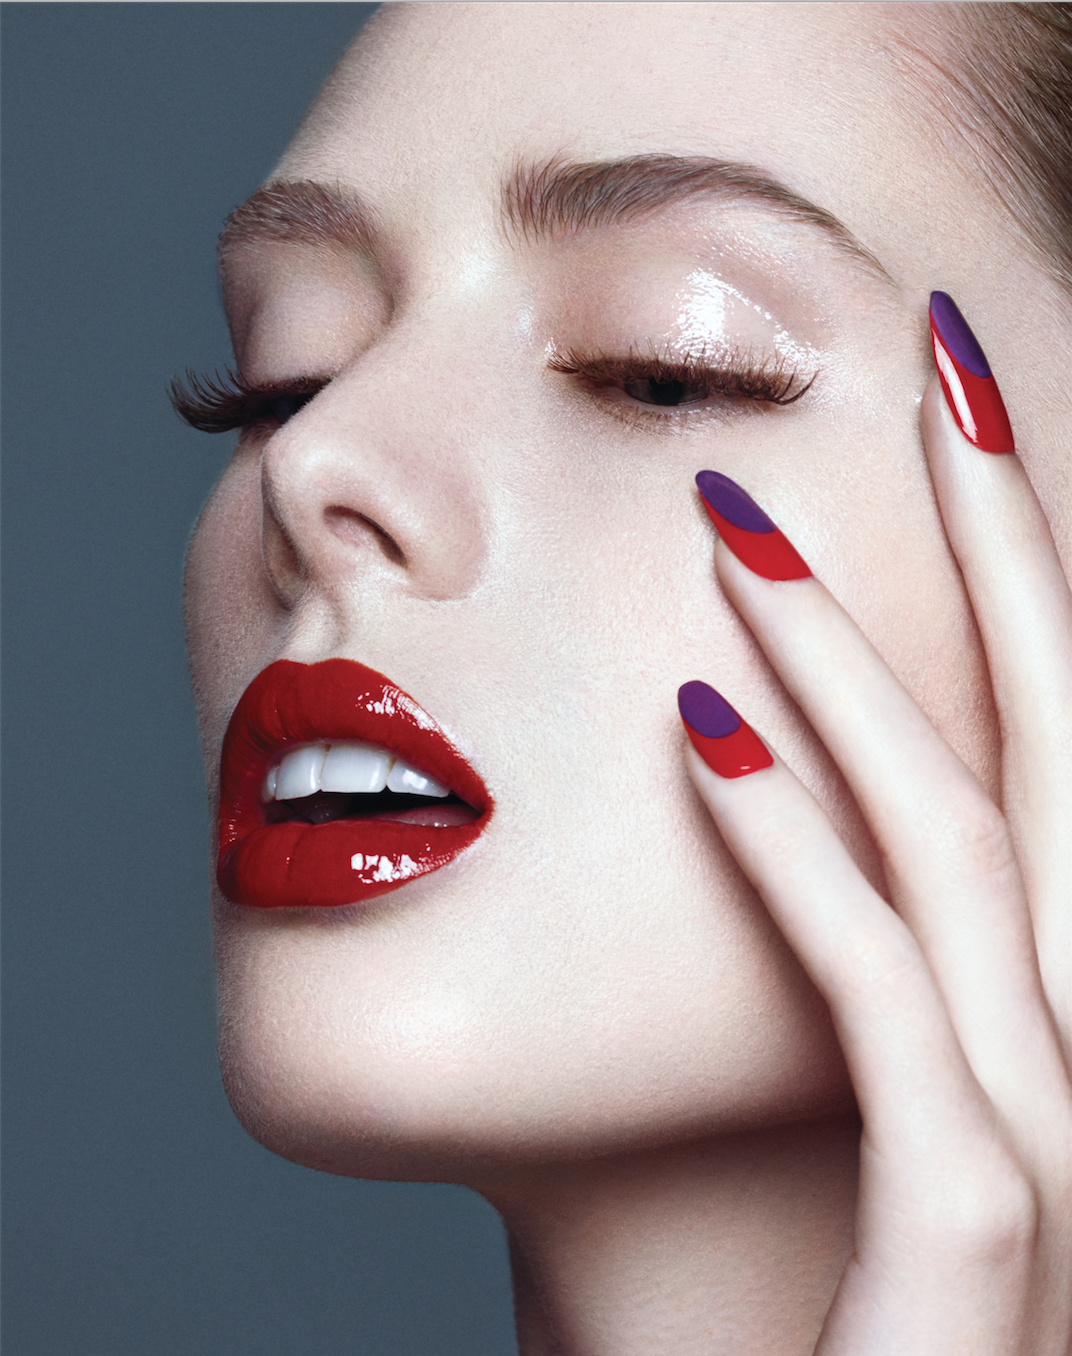 Hot Gloss beauty story for Dreamingless Magazine. Makeup